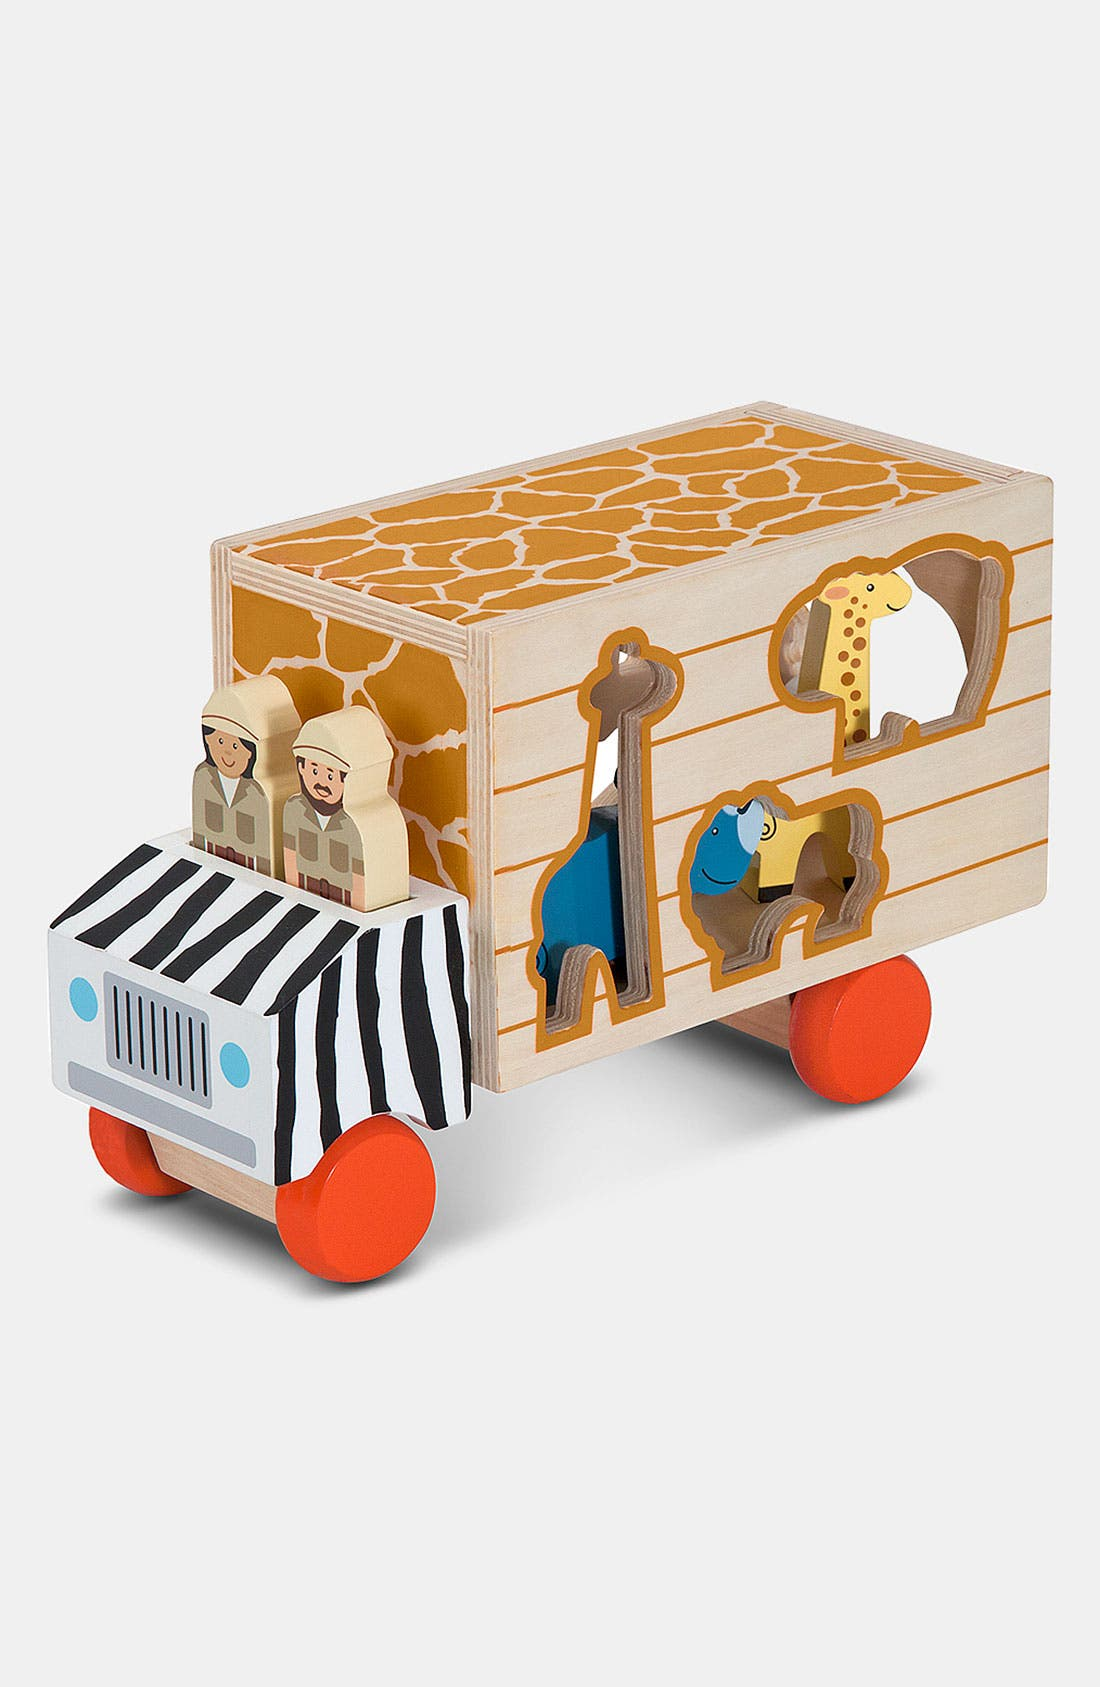 Main Image - Melissa & Doug 'Animal Rescue' Shape Sorting Wooden Truck Toy